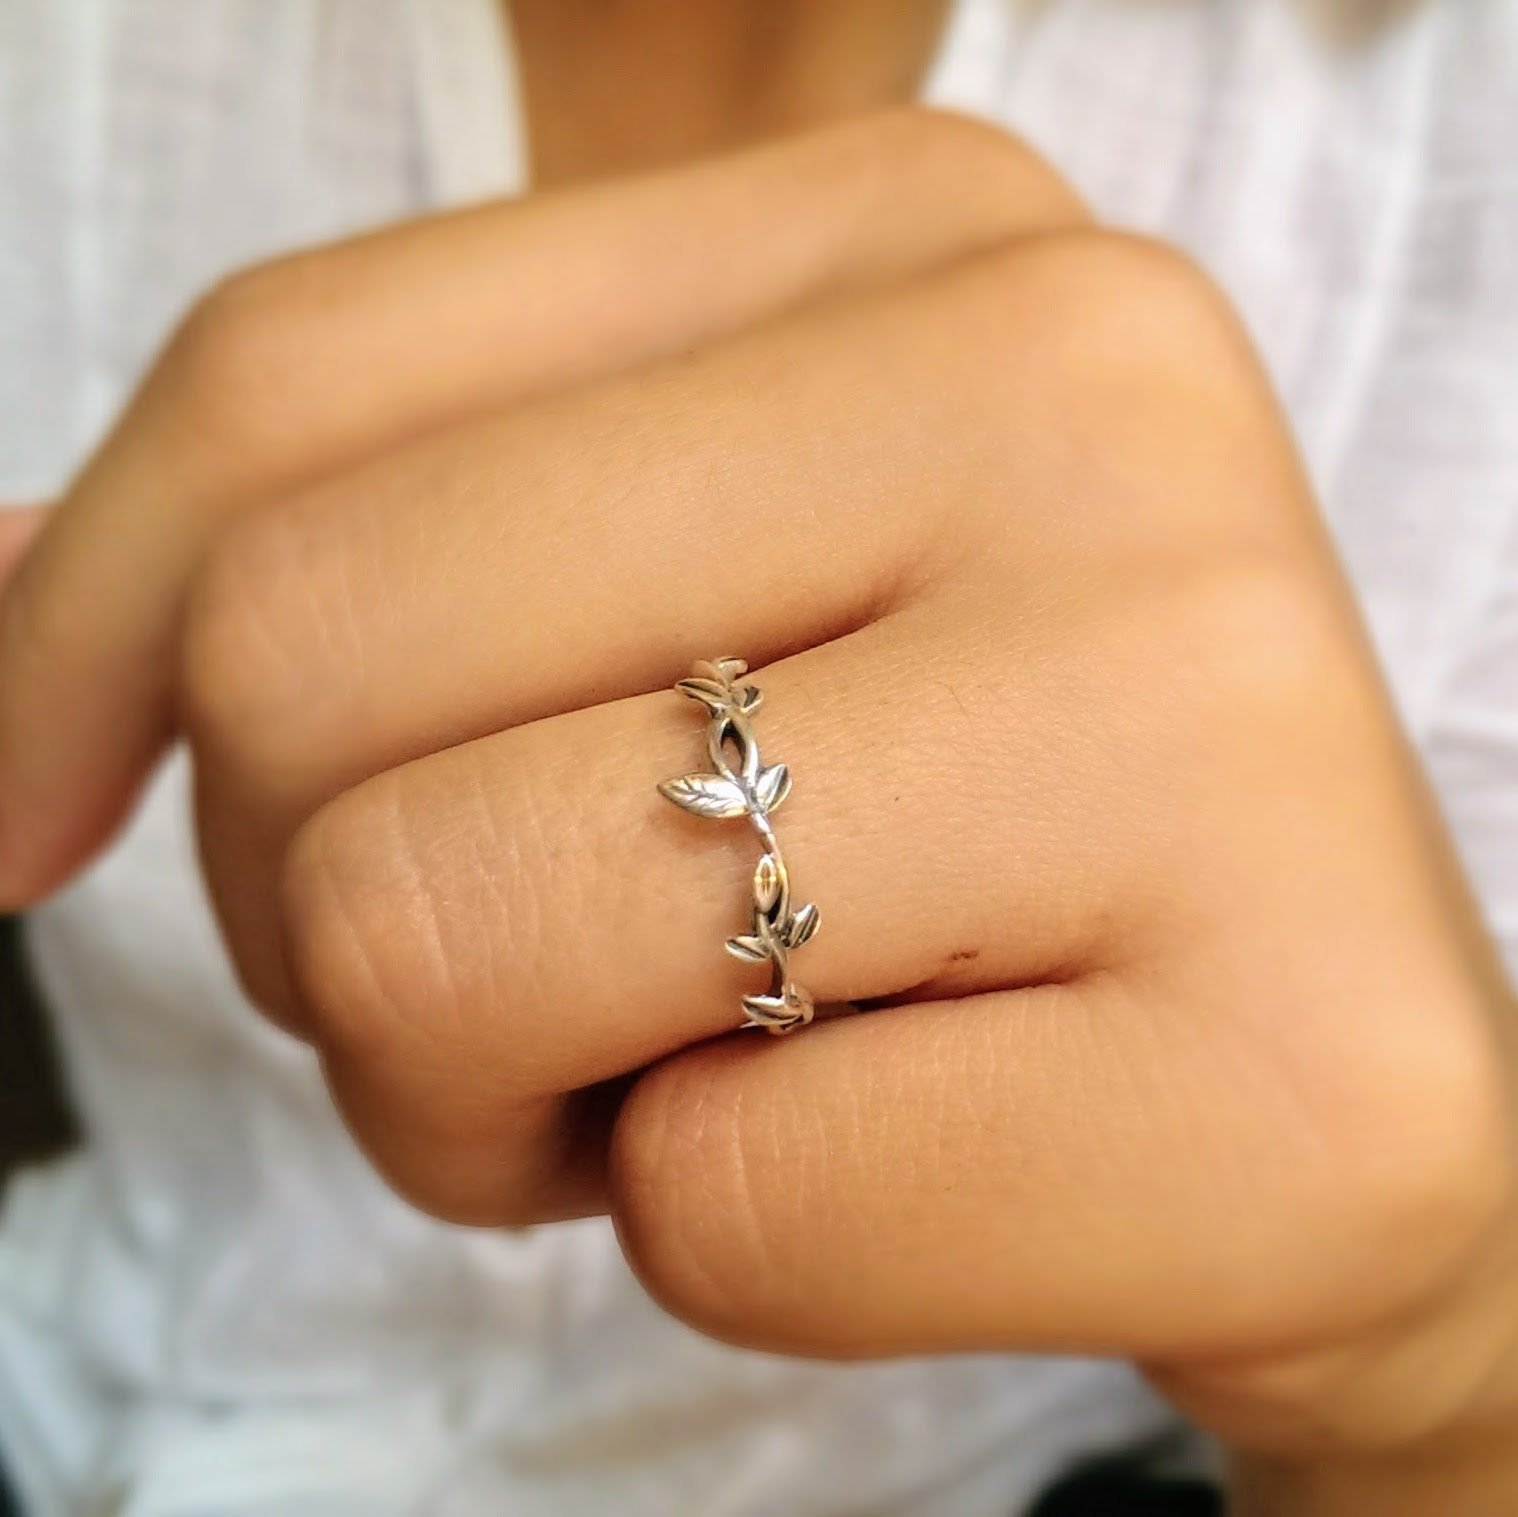 Sterling Silver Dainty Vine Leaf Ring, Sizes 4.5-9 US, Delicate Silver Ring